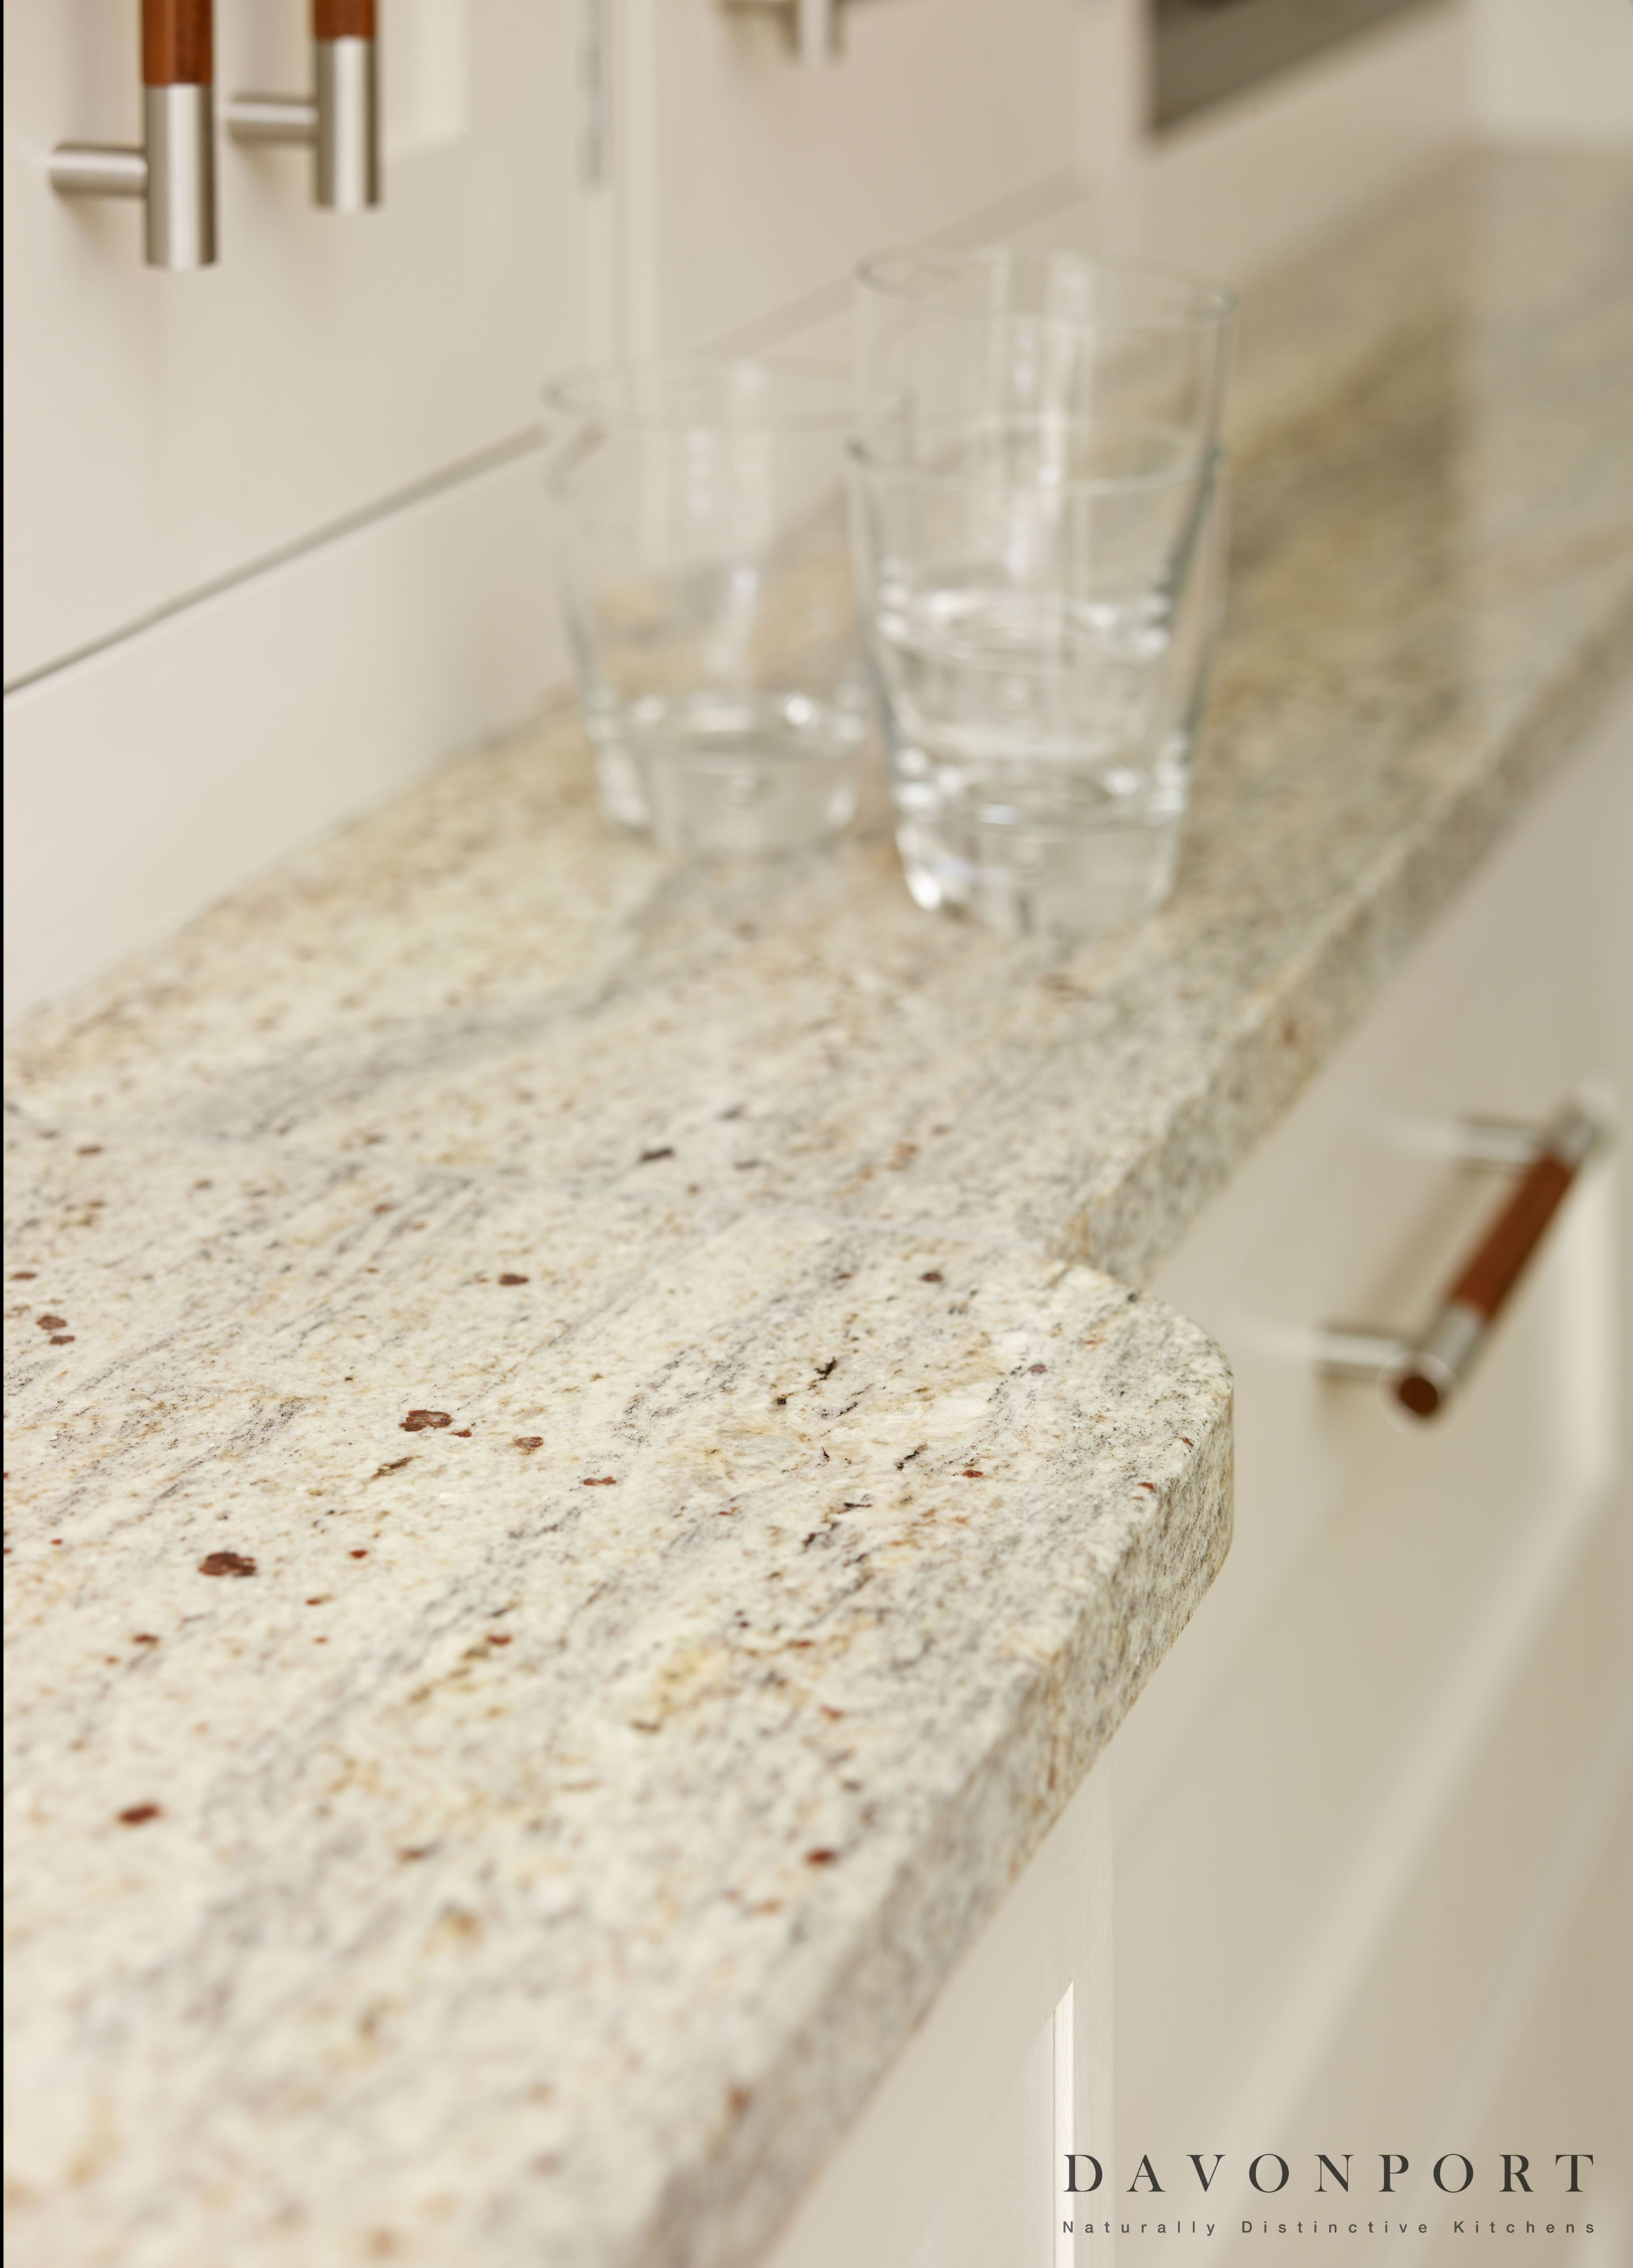 The Kashmir White Granite Worktops Are Perfectly In Keeping With The